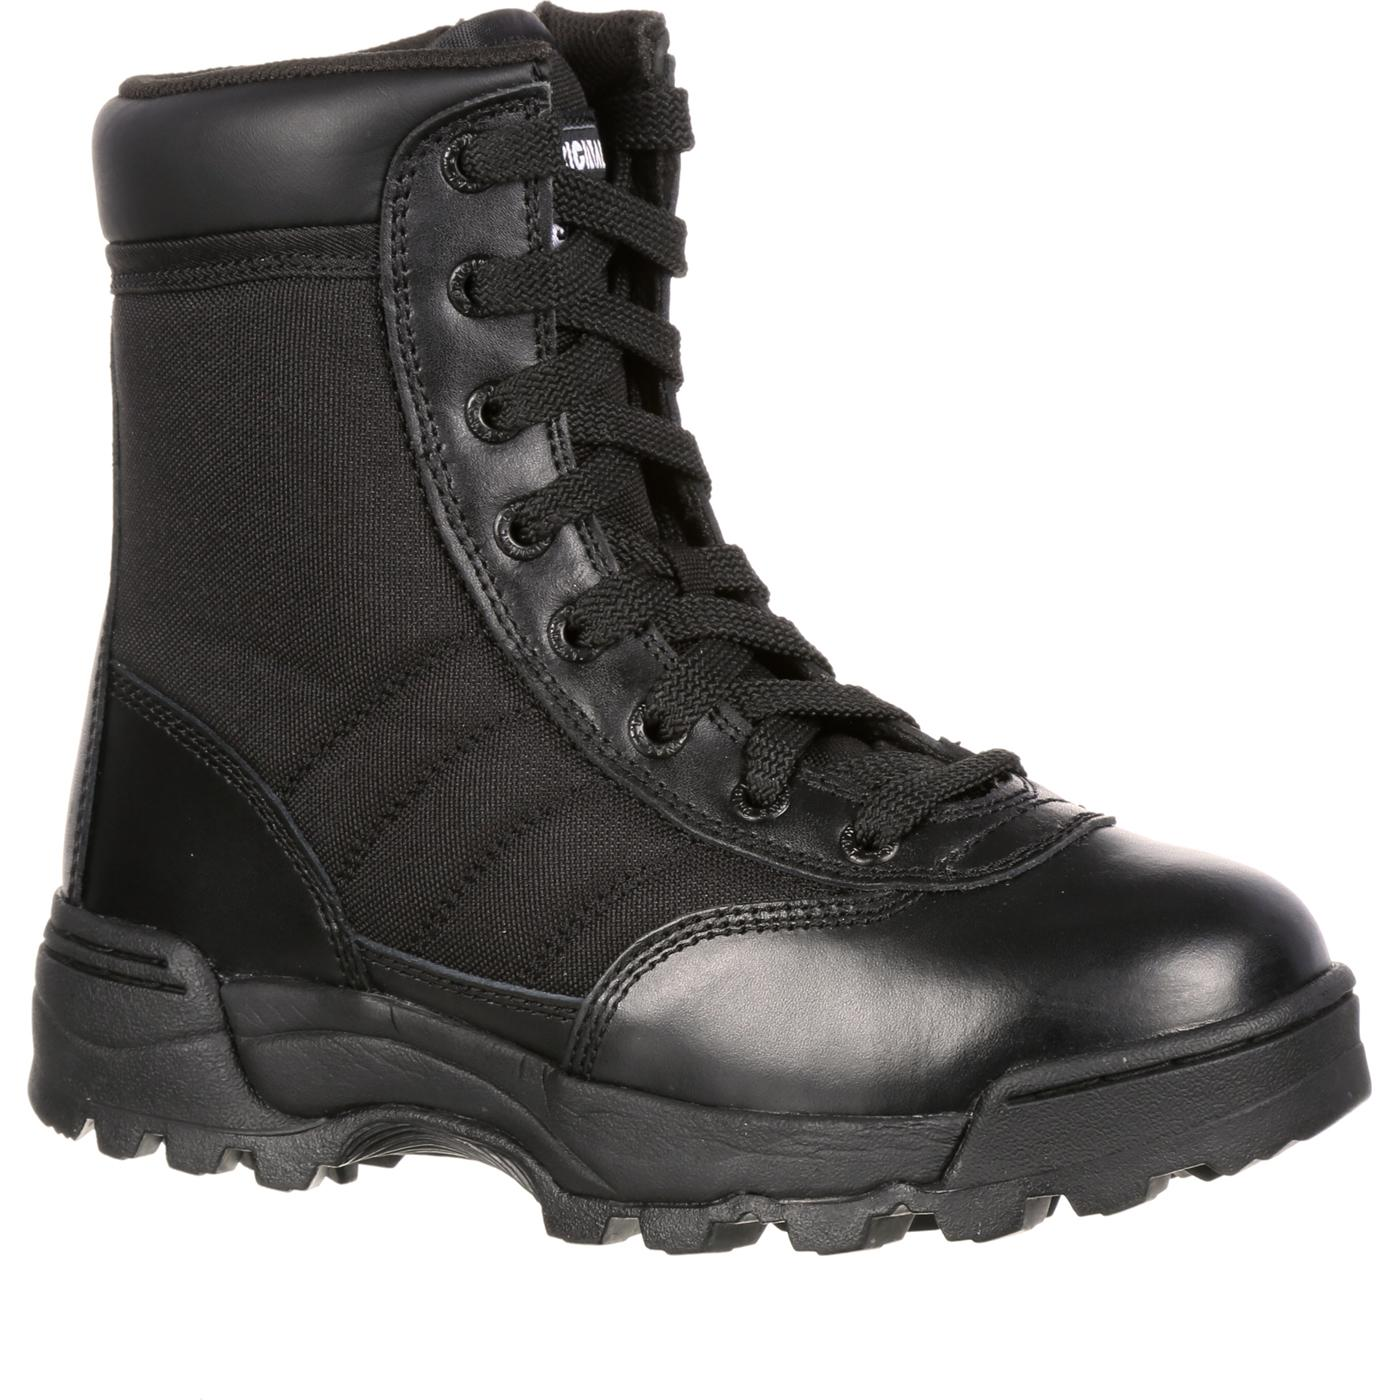 1152 Mens  SWAT Boots Motorcycle Street Gear